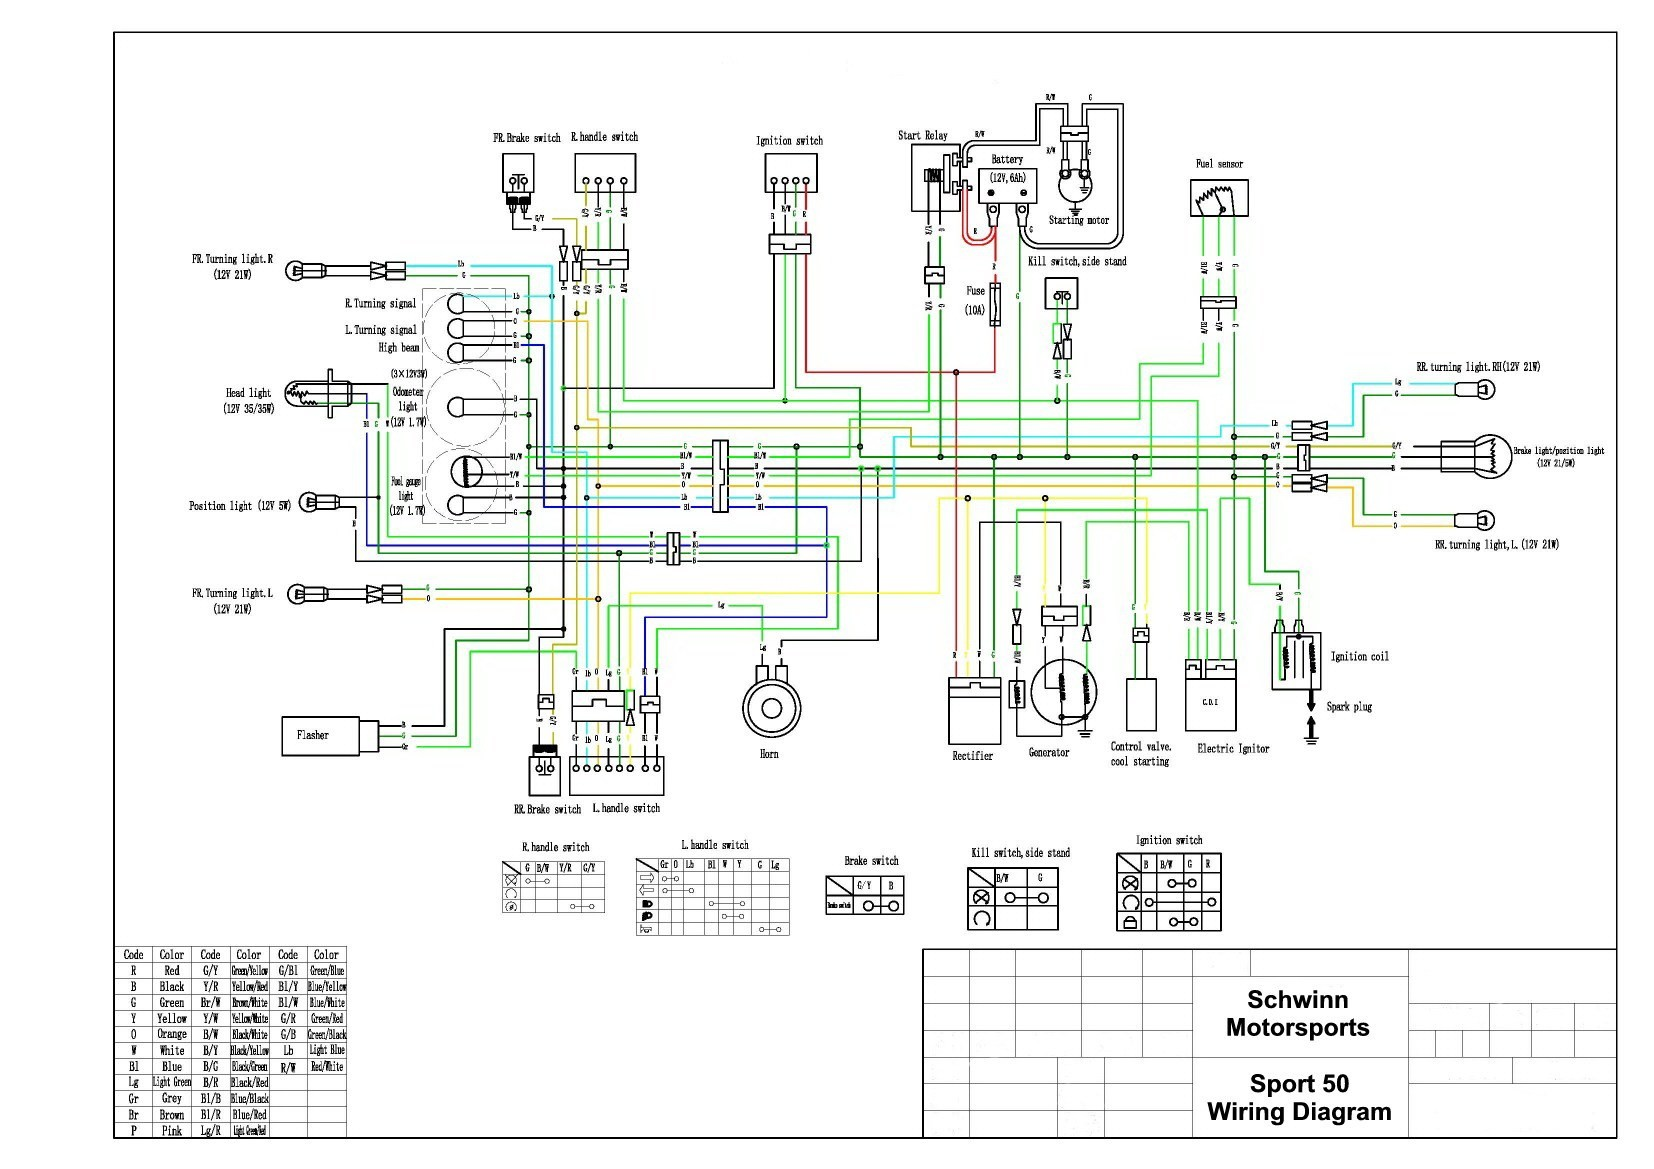 Amp Research Power Step Wiring Diagram Hoveround Wiring Diagram Of Amp Research Power Step Wiring Diagram Hoveround Wiring Diagram